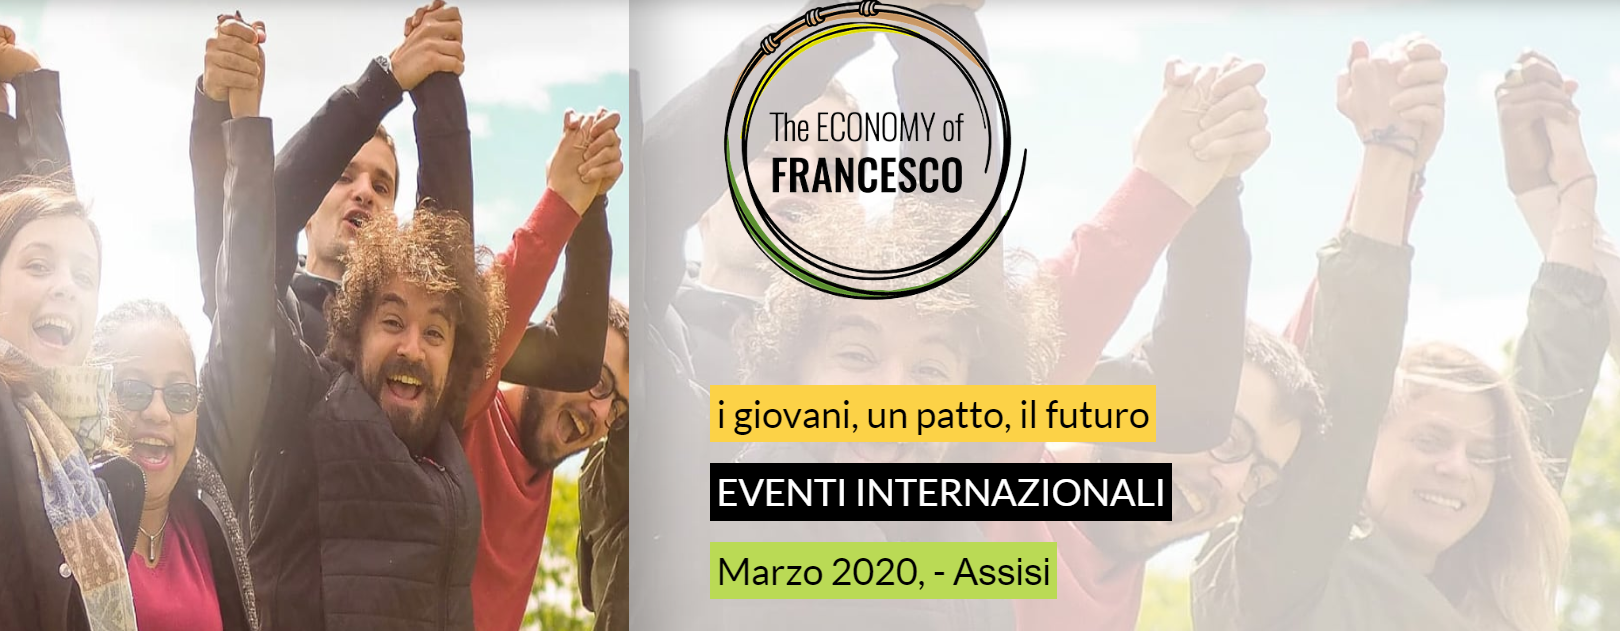 The Economy of Francesco Rinviato  Novembre 2020